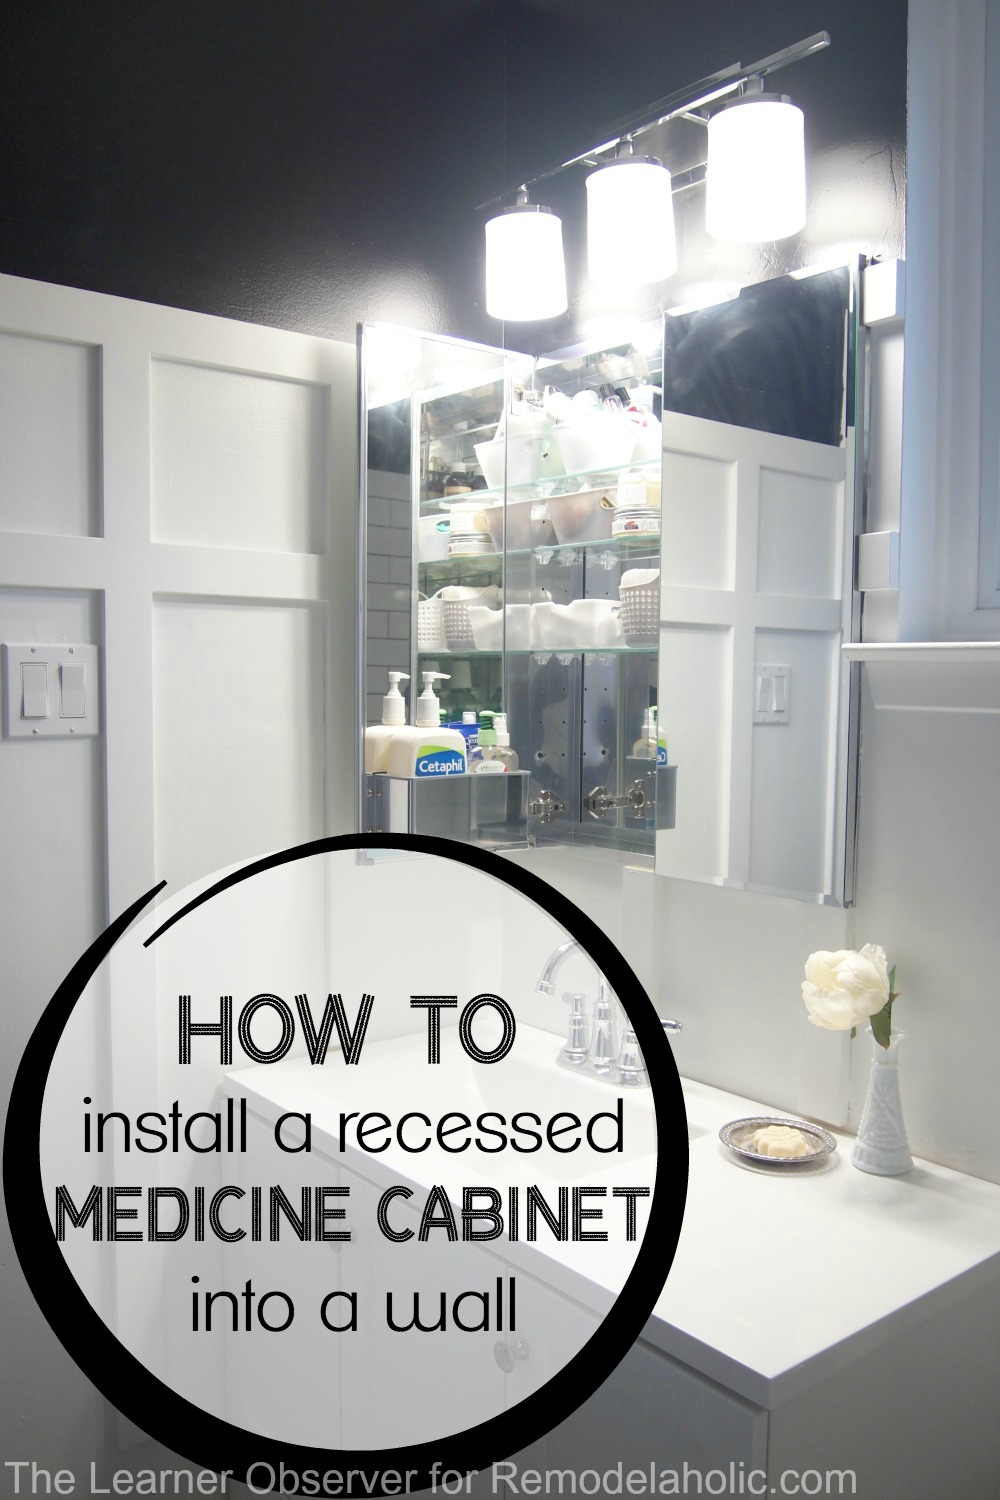 I Had No Idea It Was This Easy To Install A Recessed Medicine Cabinet! This